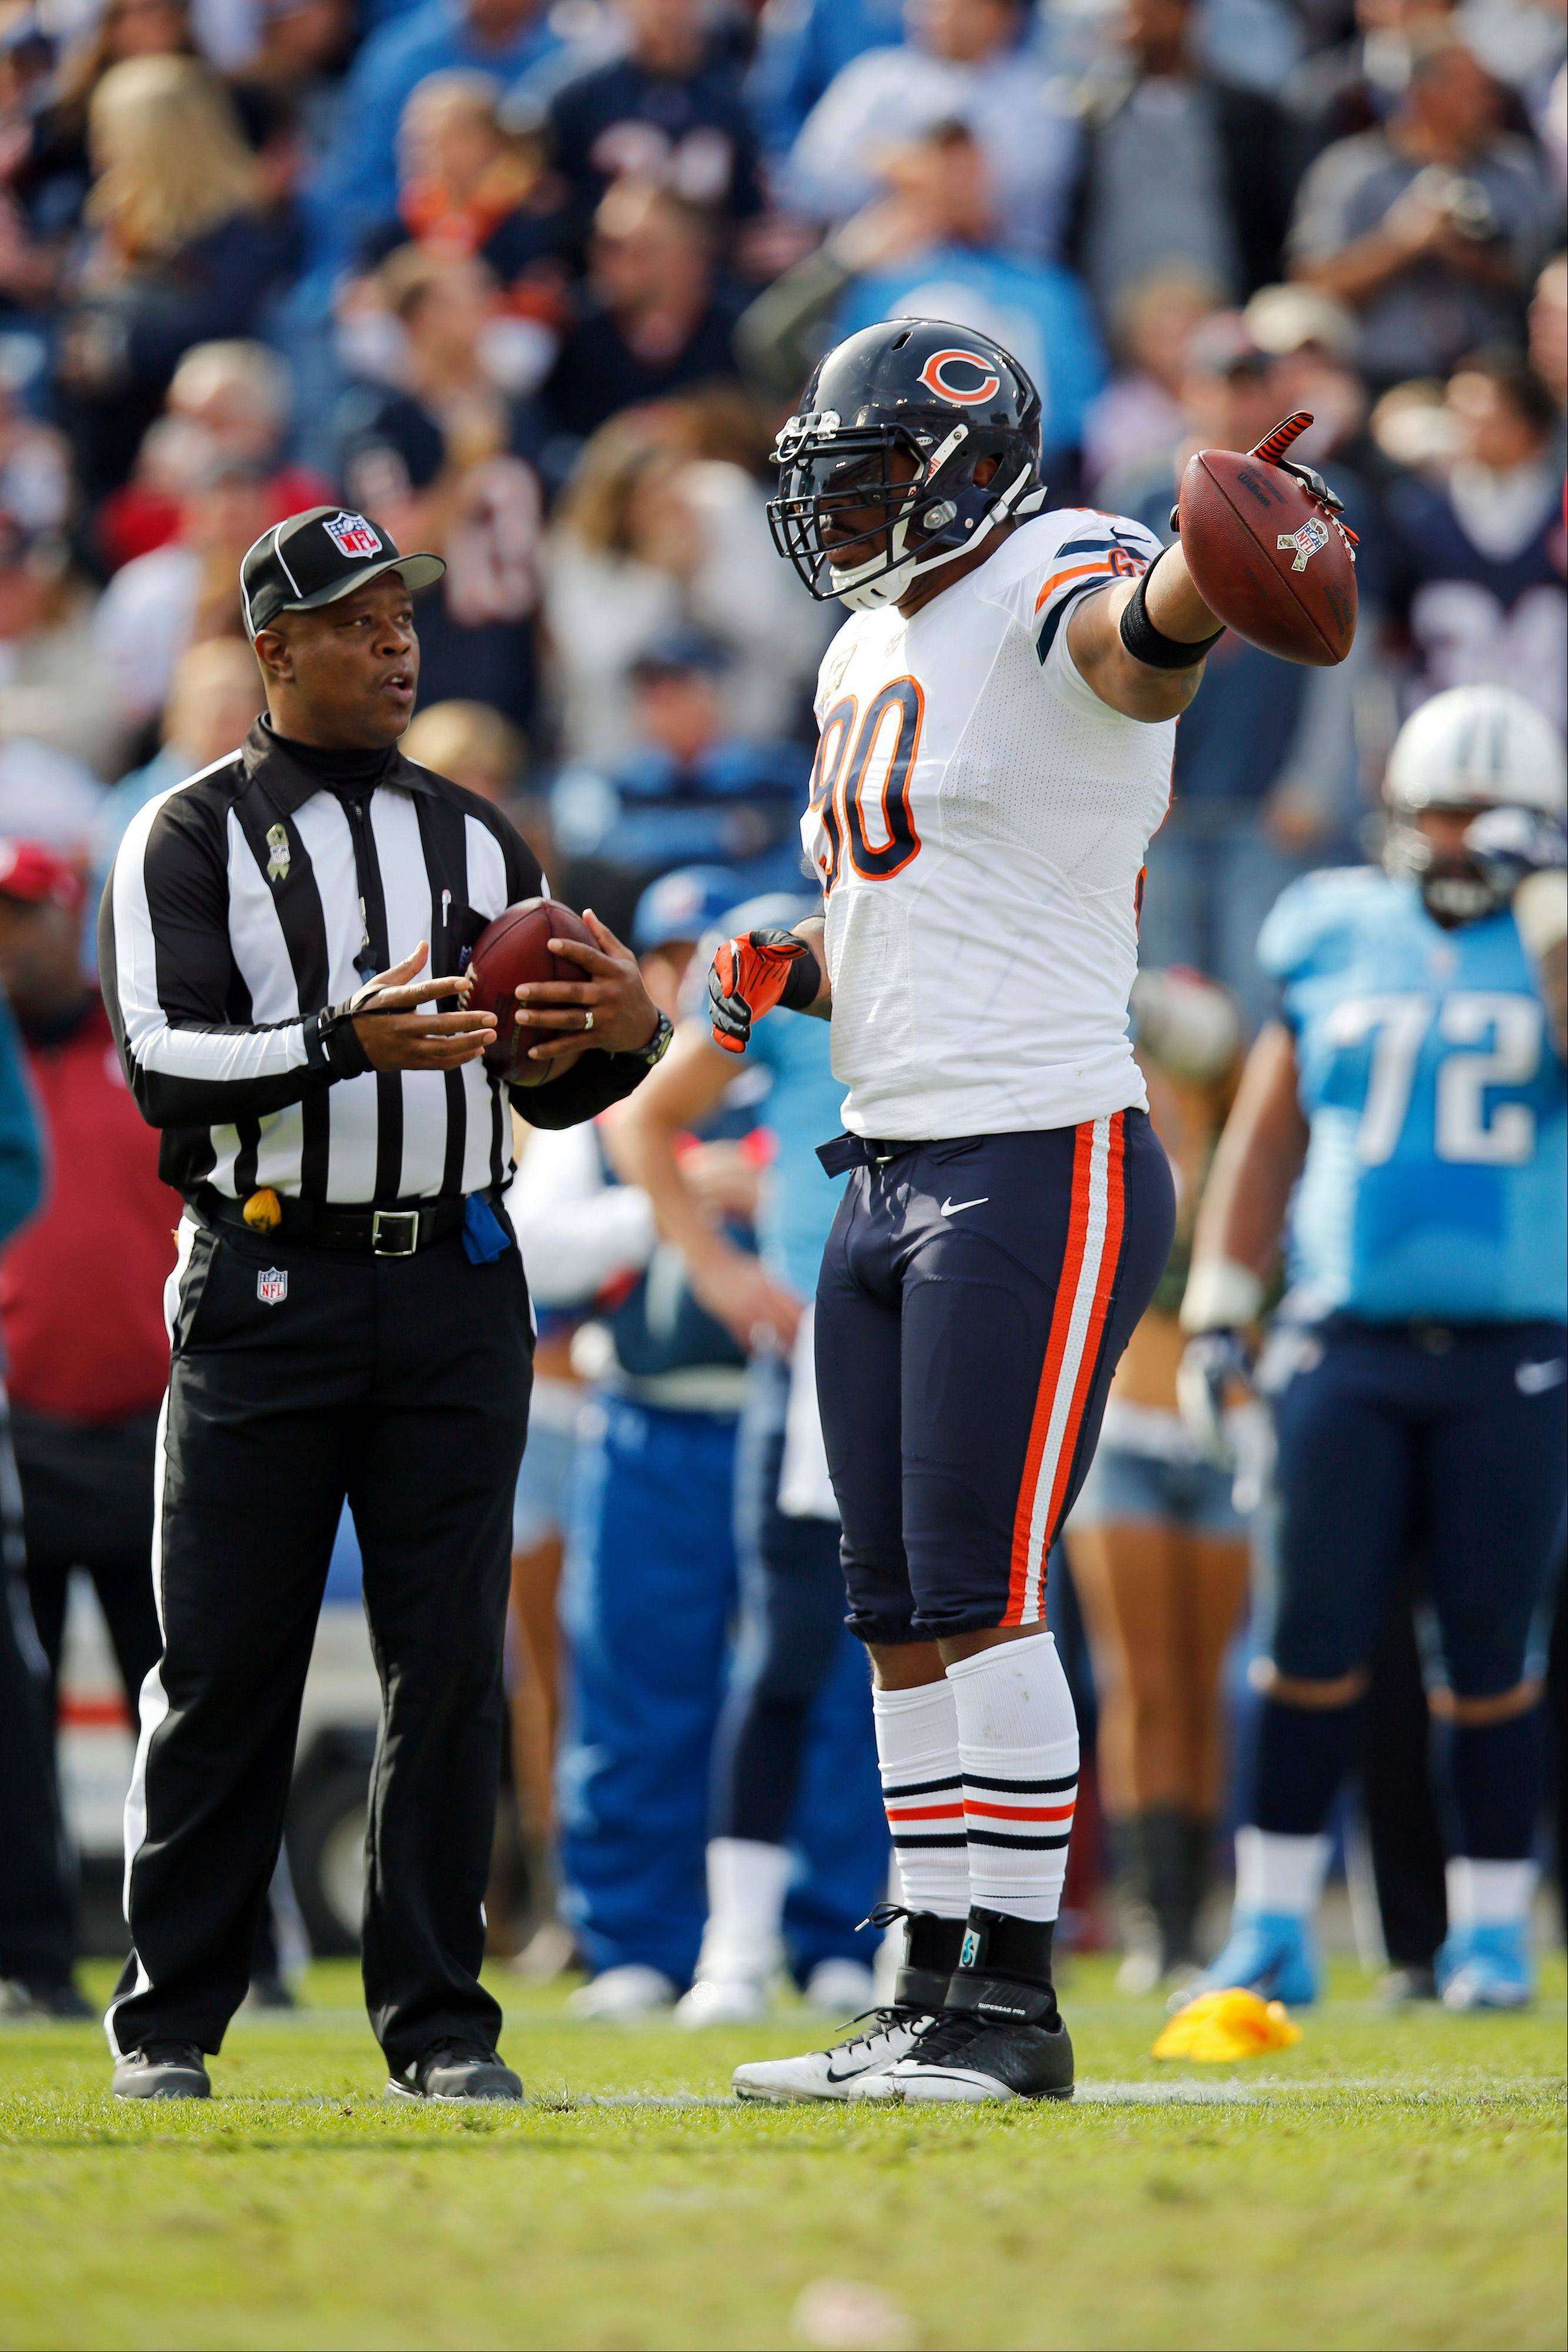 Bears defensive end Julius Peppers could step up and dazzle in Sunday night�s game against the Texans, according to Mike Spellman.